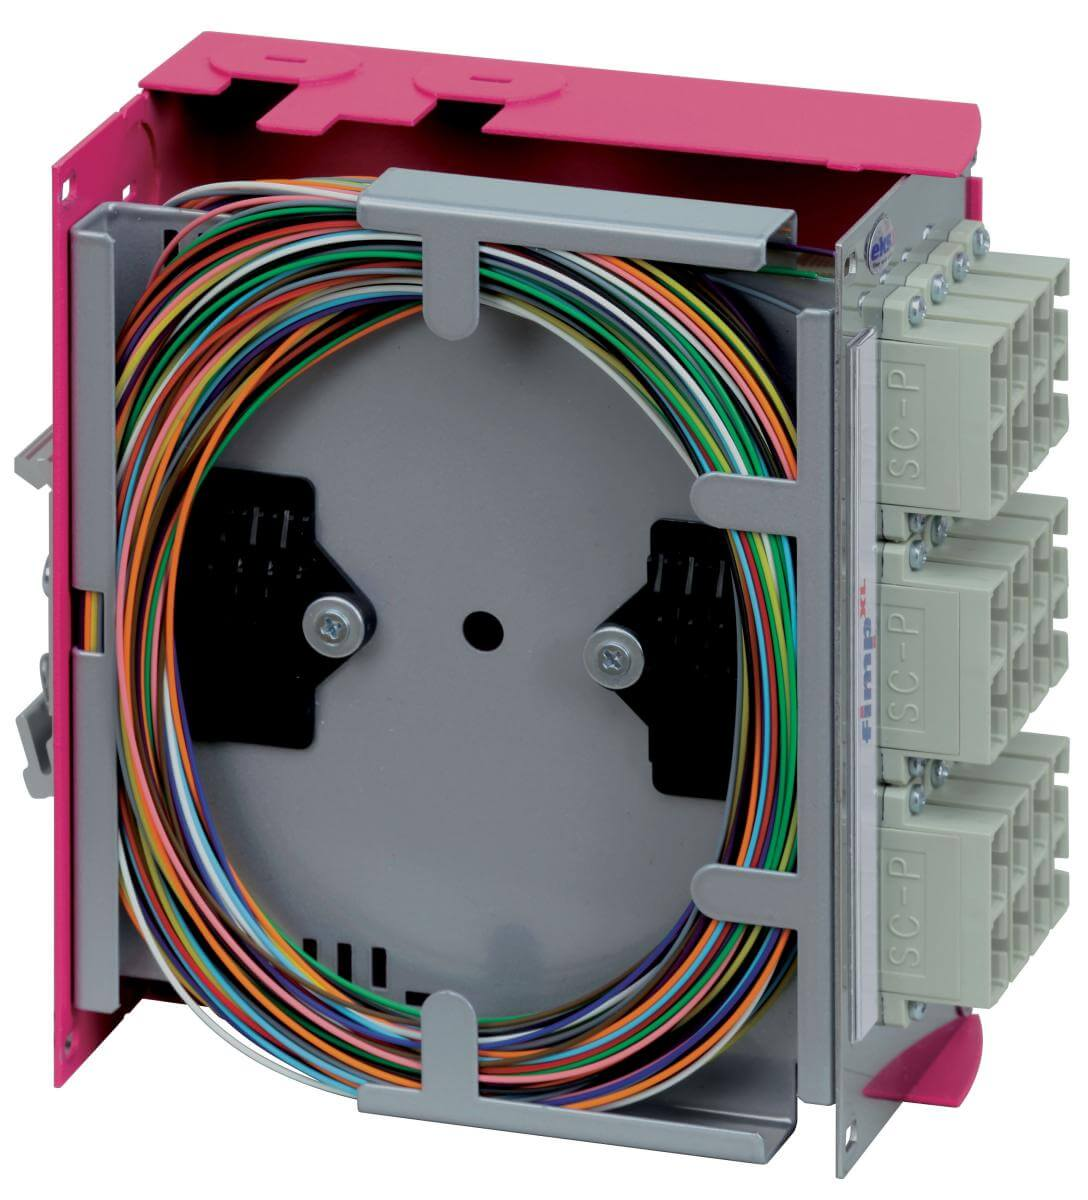 Fiber Optic Splice Box Fimp Xl 62mm Besd Optics And Circuit Board Hd 00 10 Communications Cassette